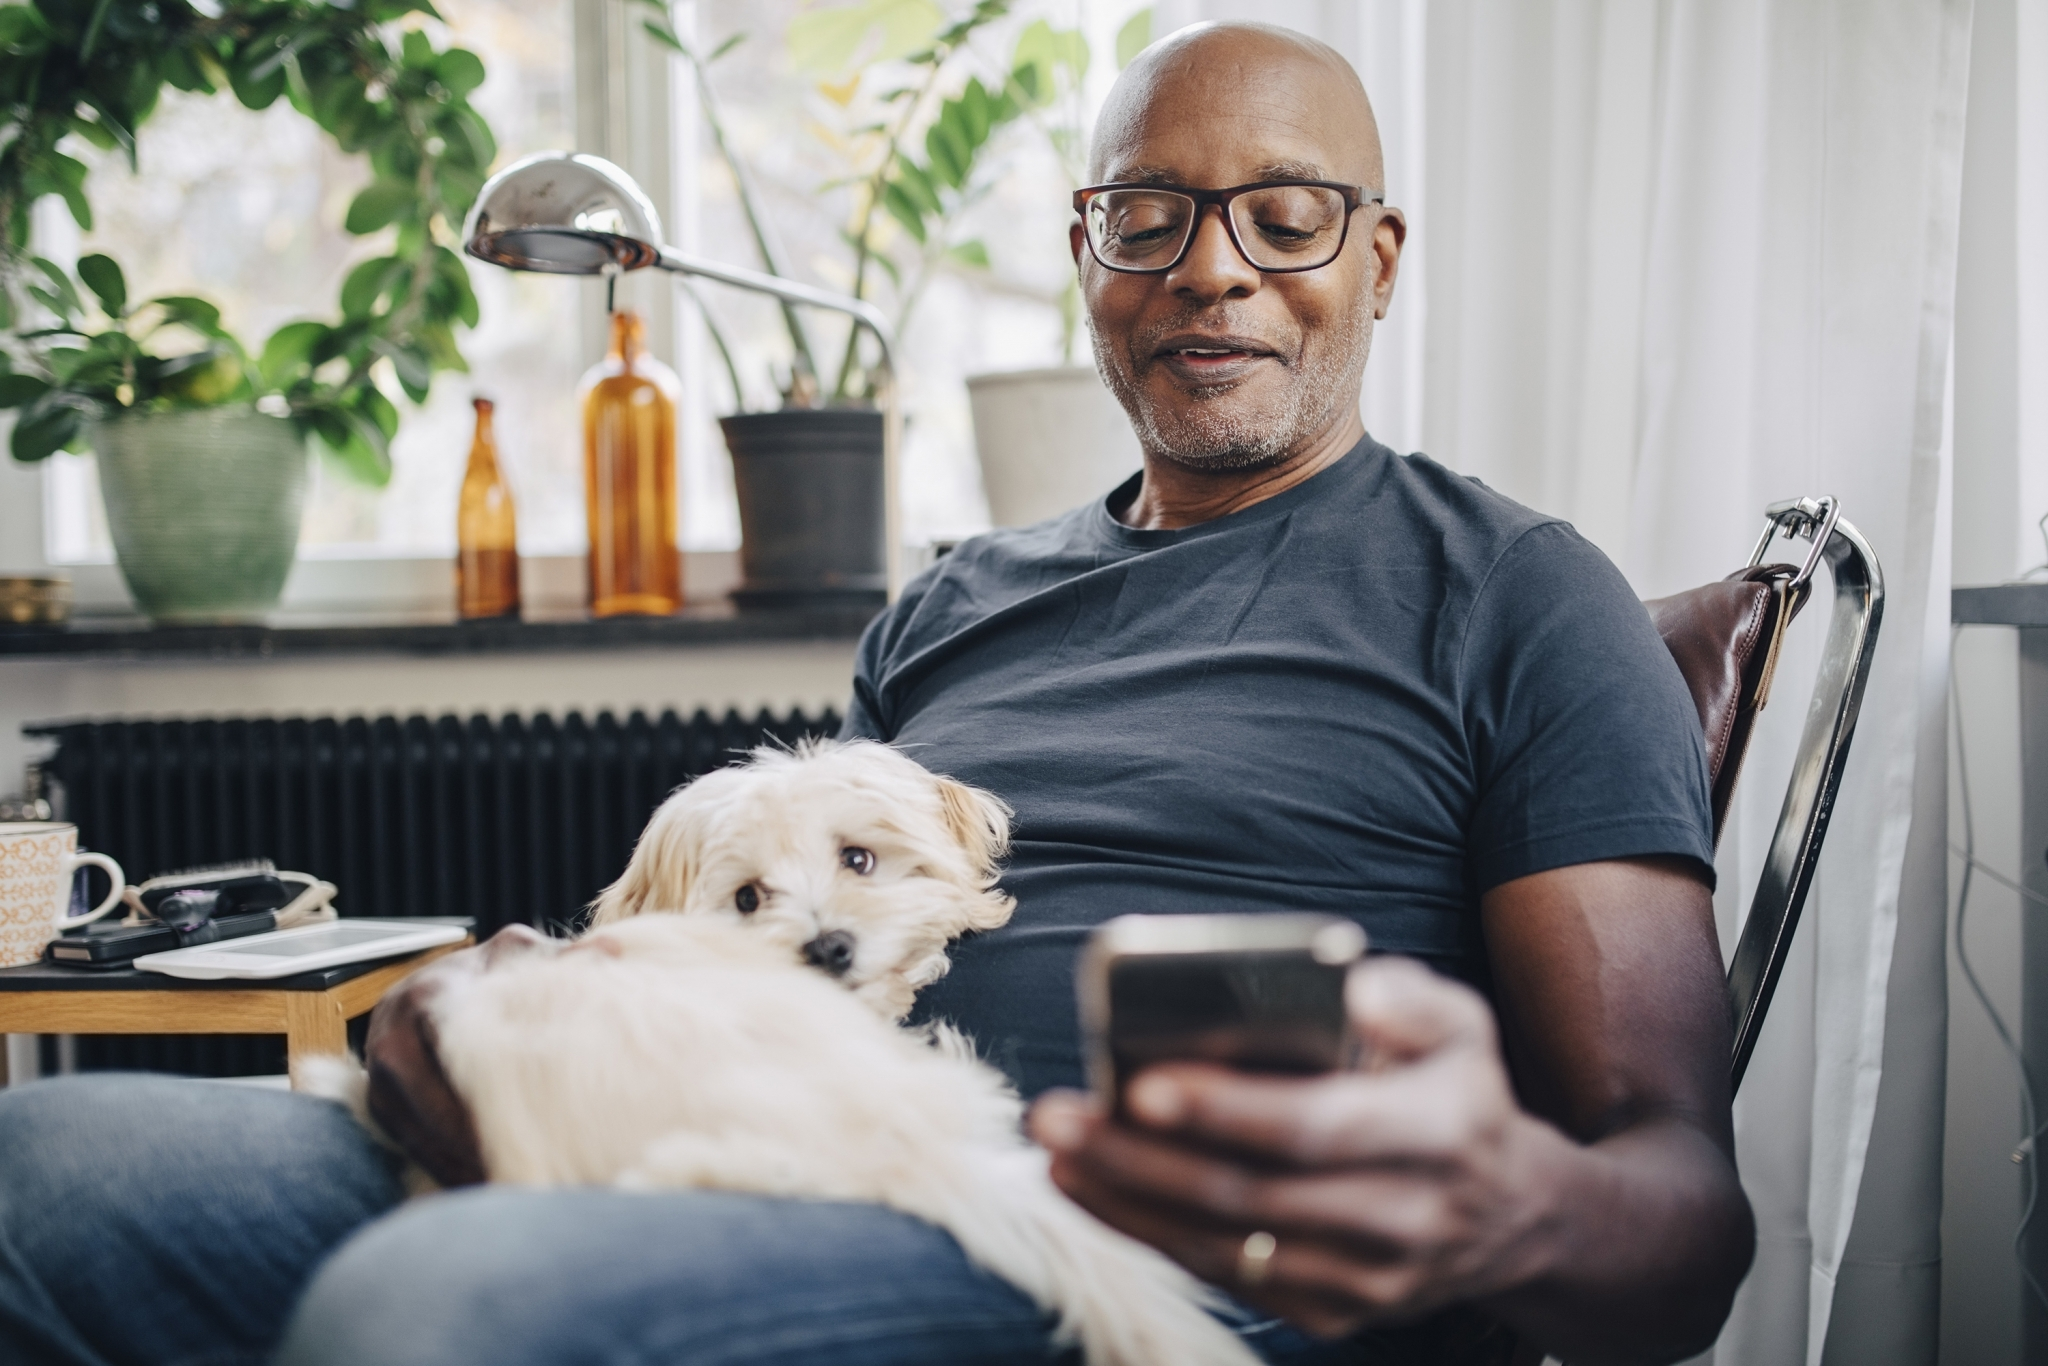 Man with Dog on Phone